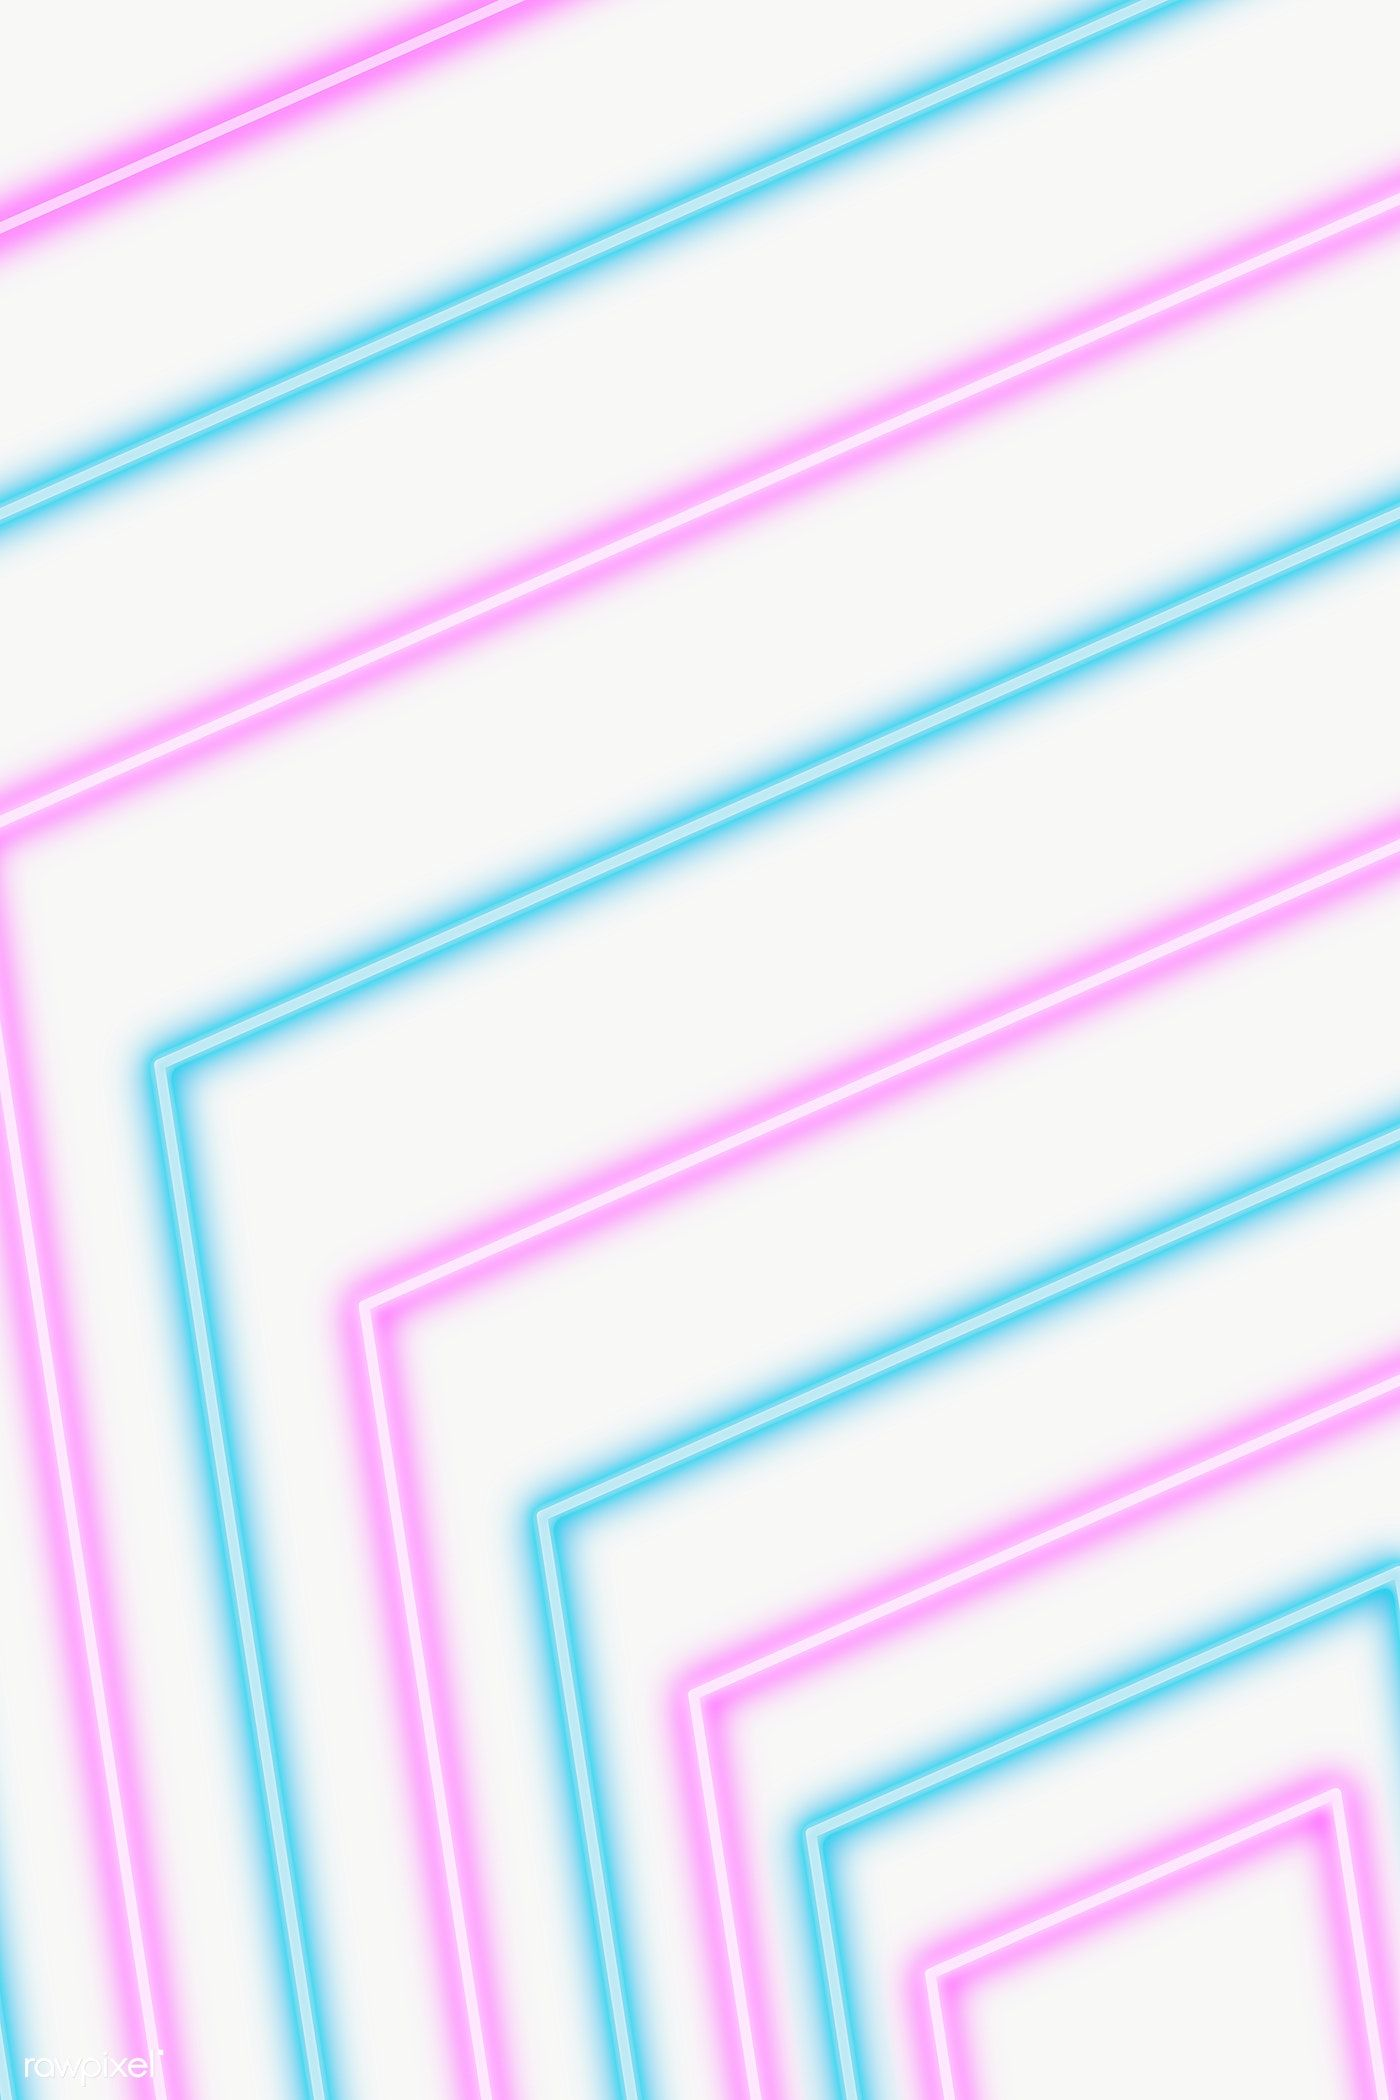 Glowing Blue And Pink Neon Lines Patterned Background Design Element Free Image By Rawpixel Com Aum Background Patterns Neon Png Background Design